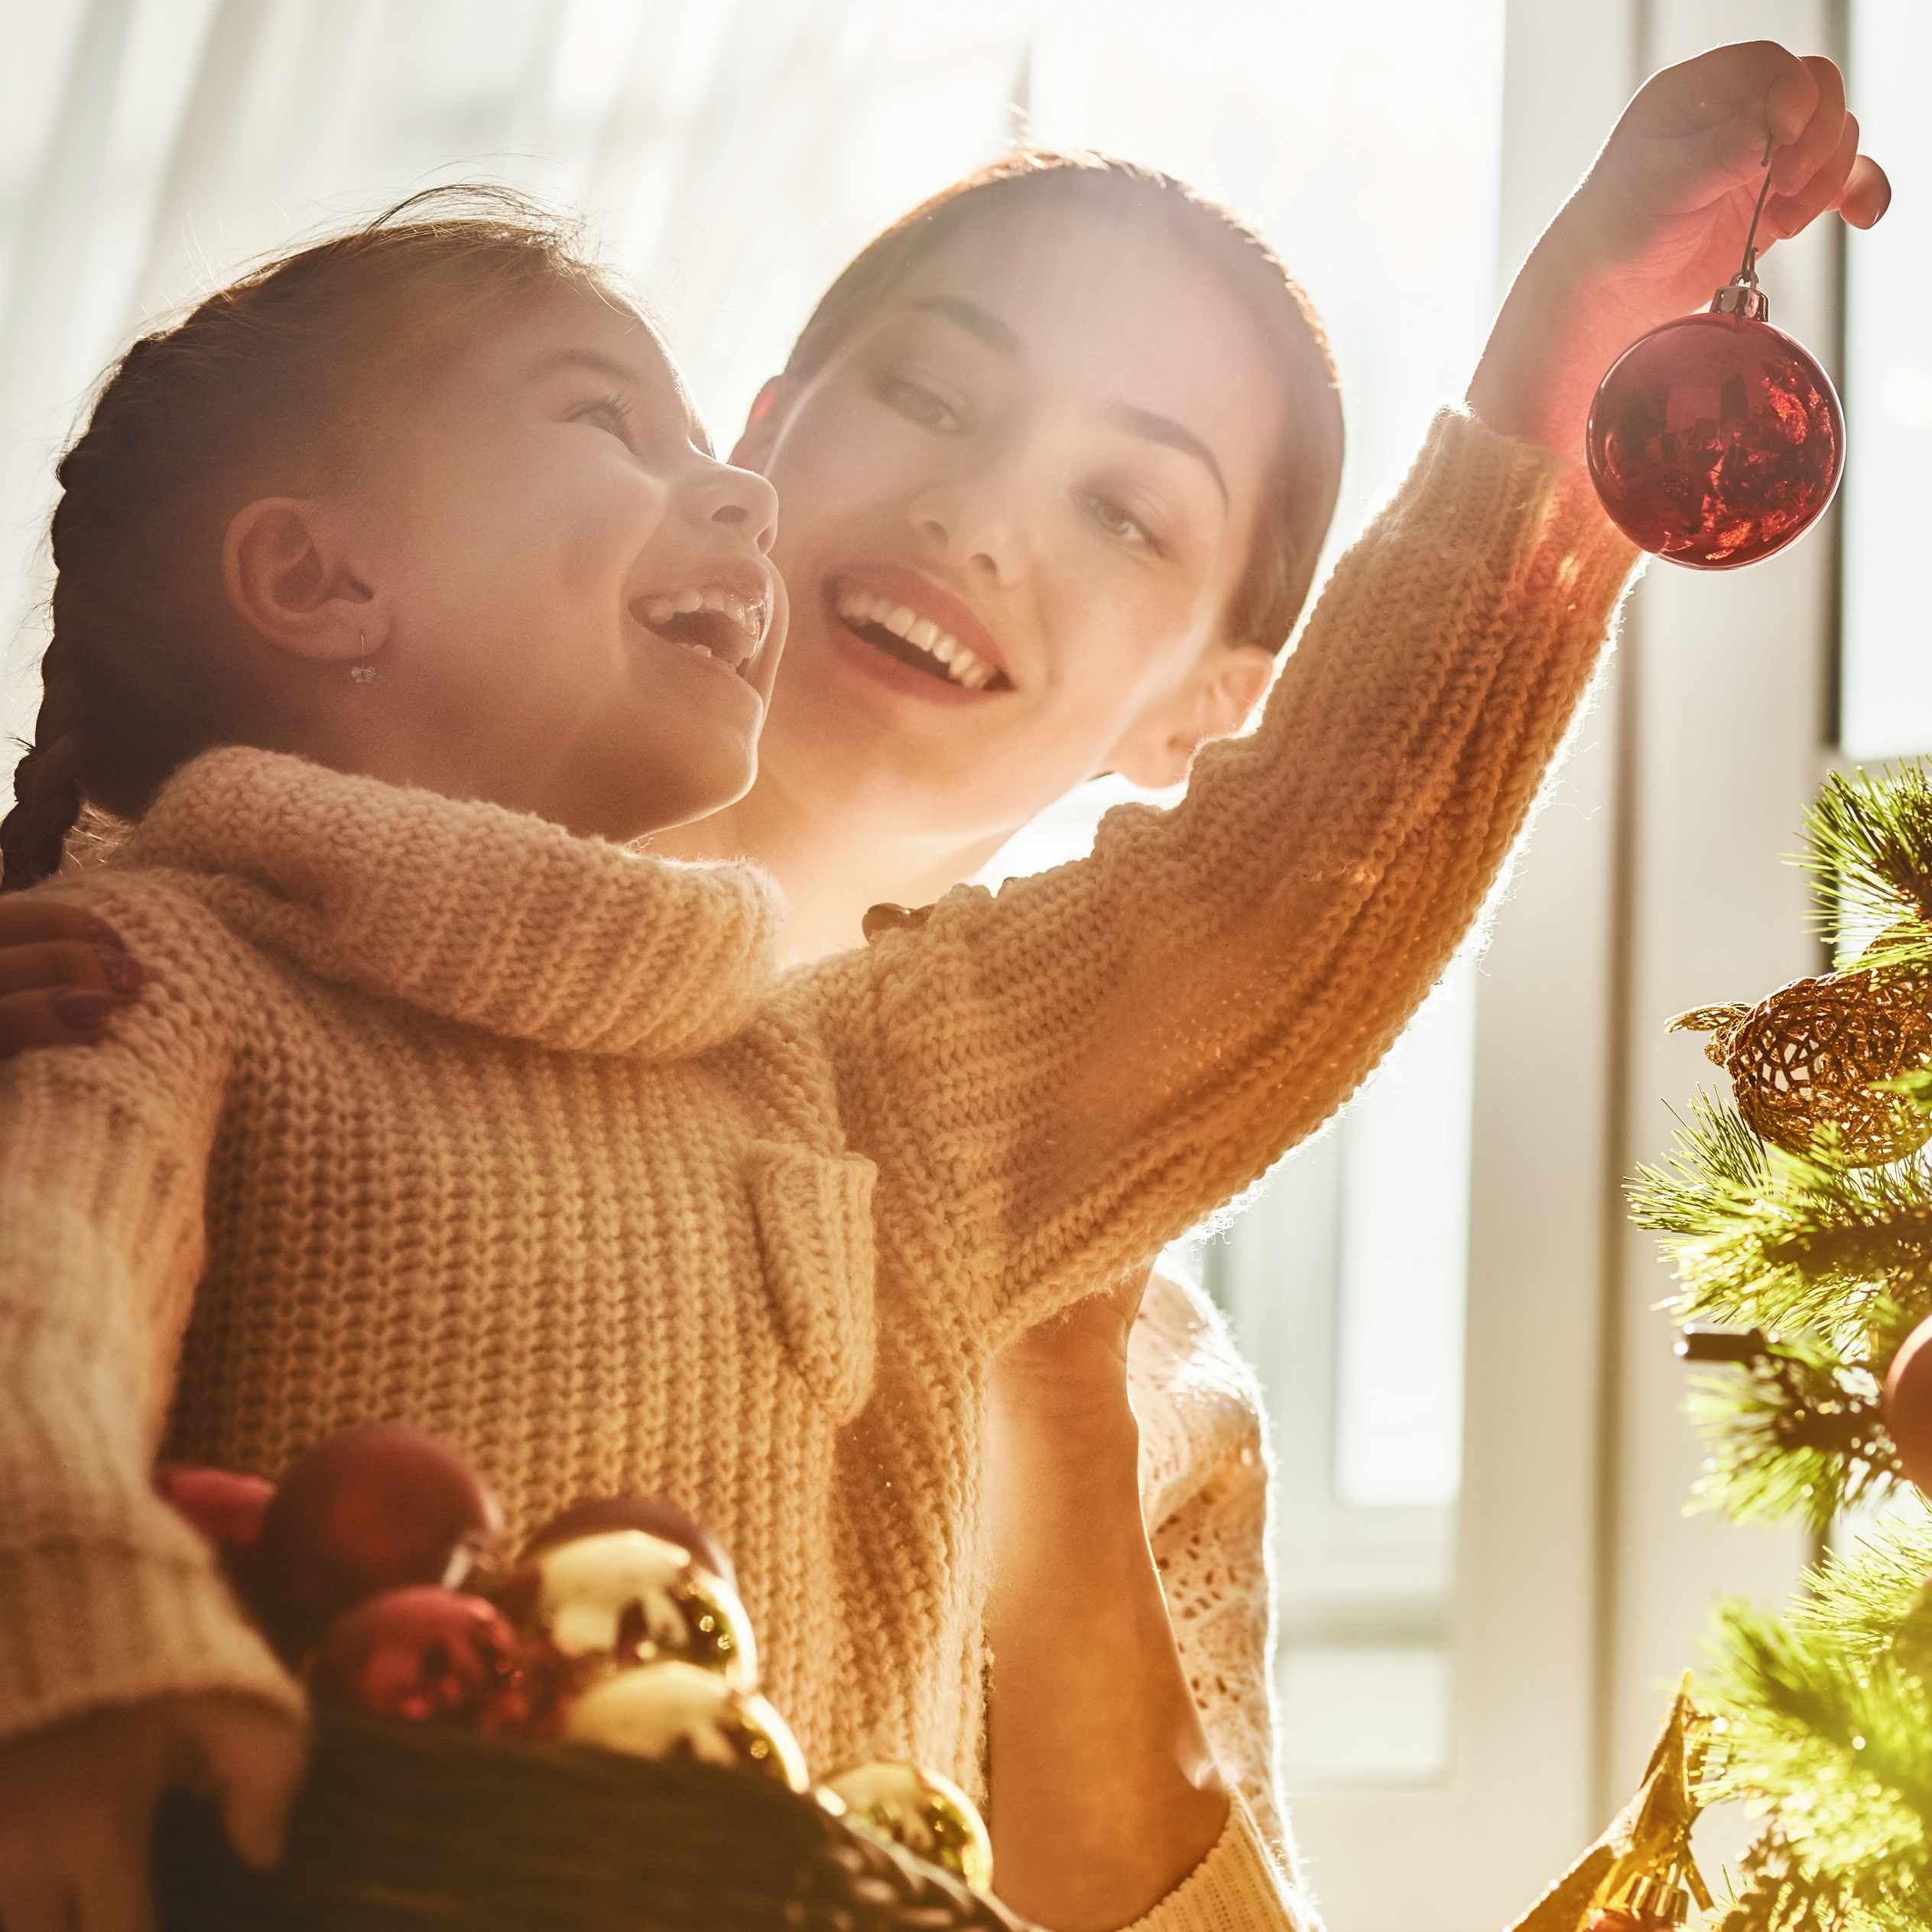 a woman holding a little girl near the Christmas tree and putting up ornaments